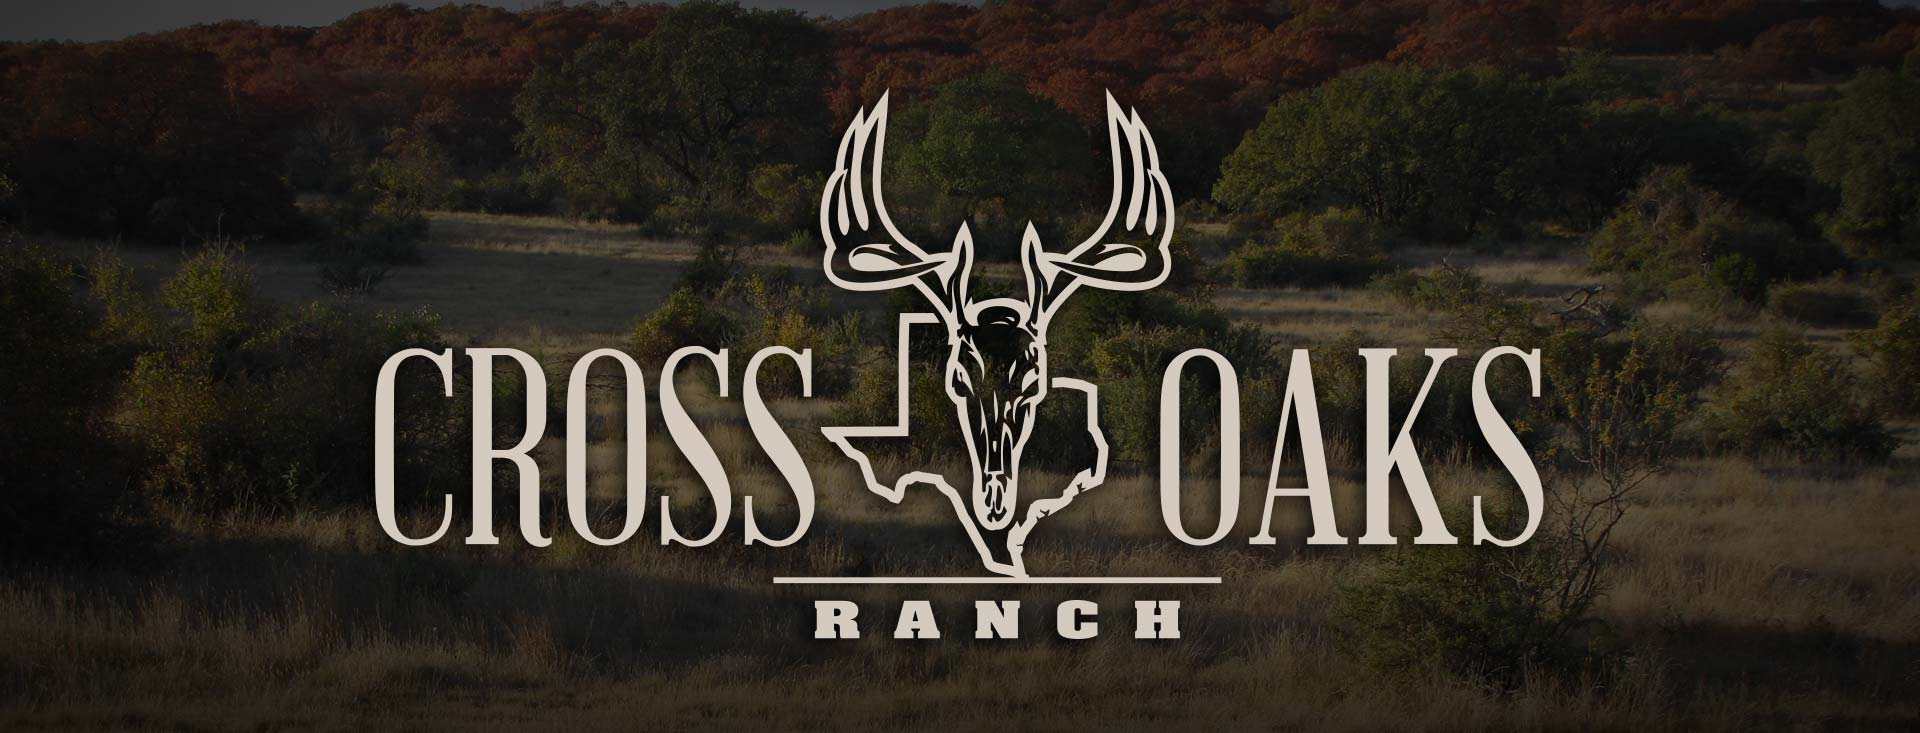 Link to Cross Oaks Ranch